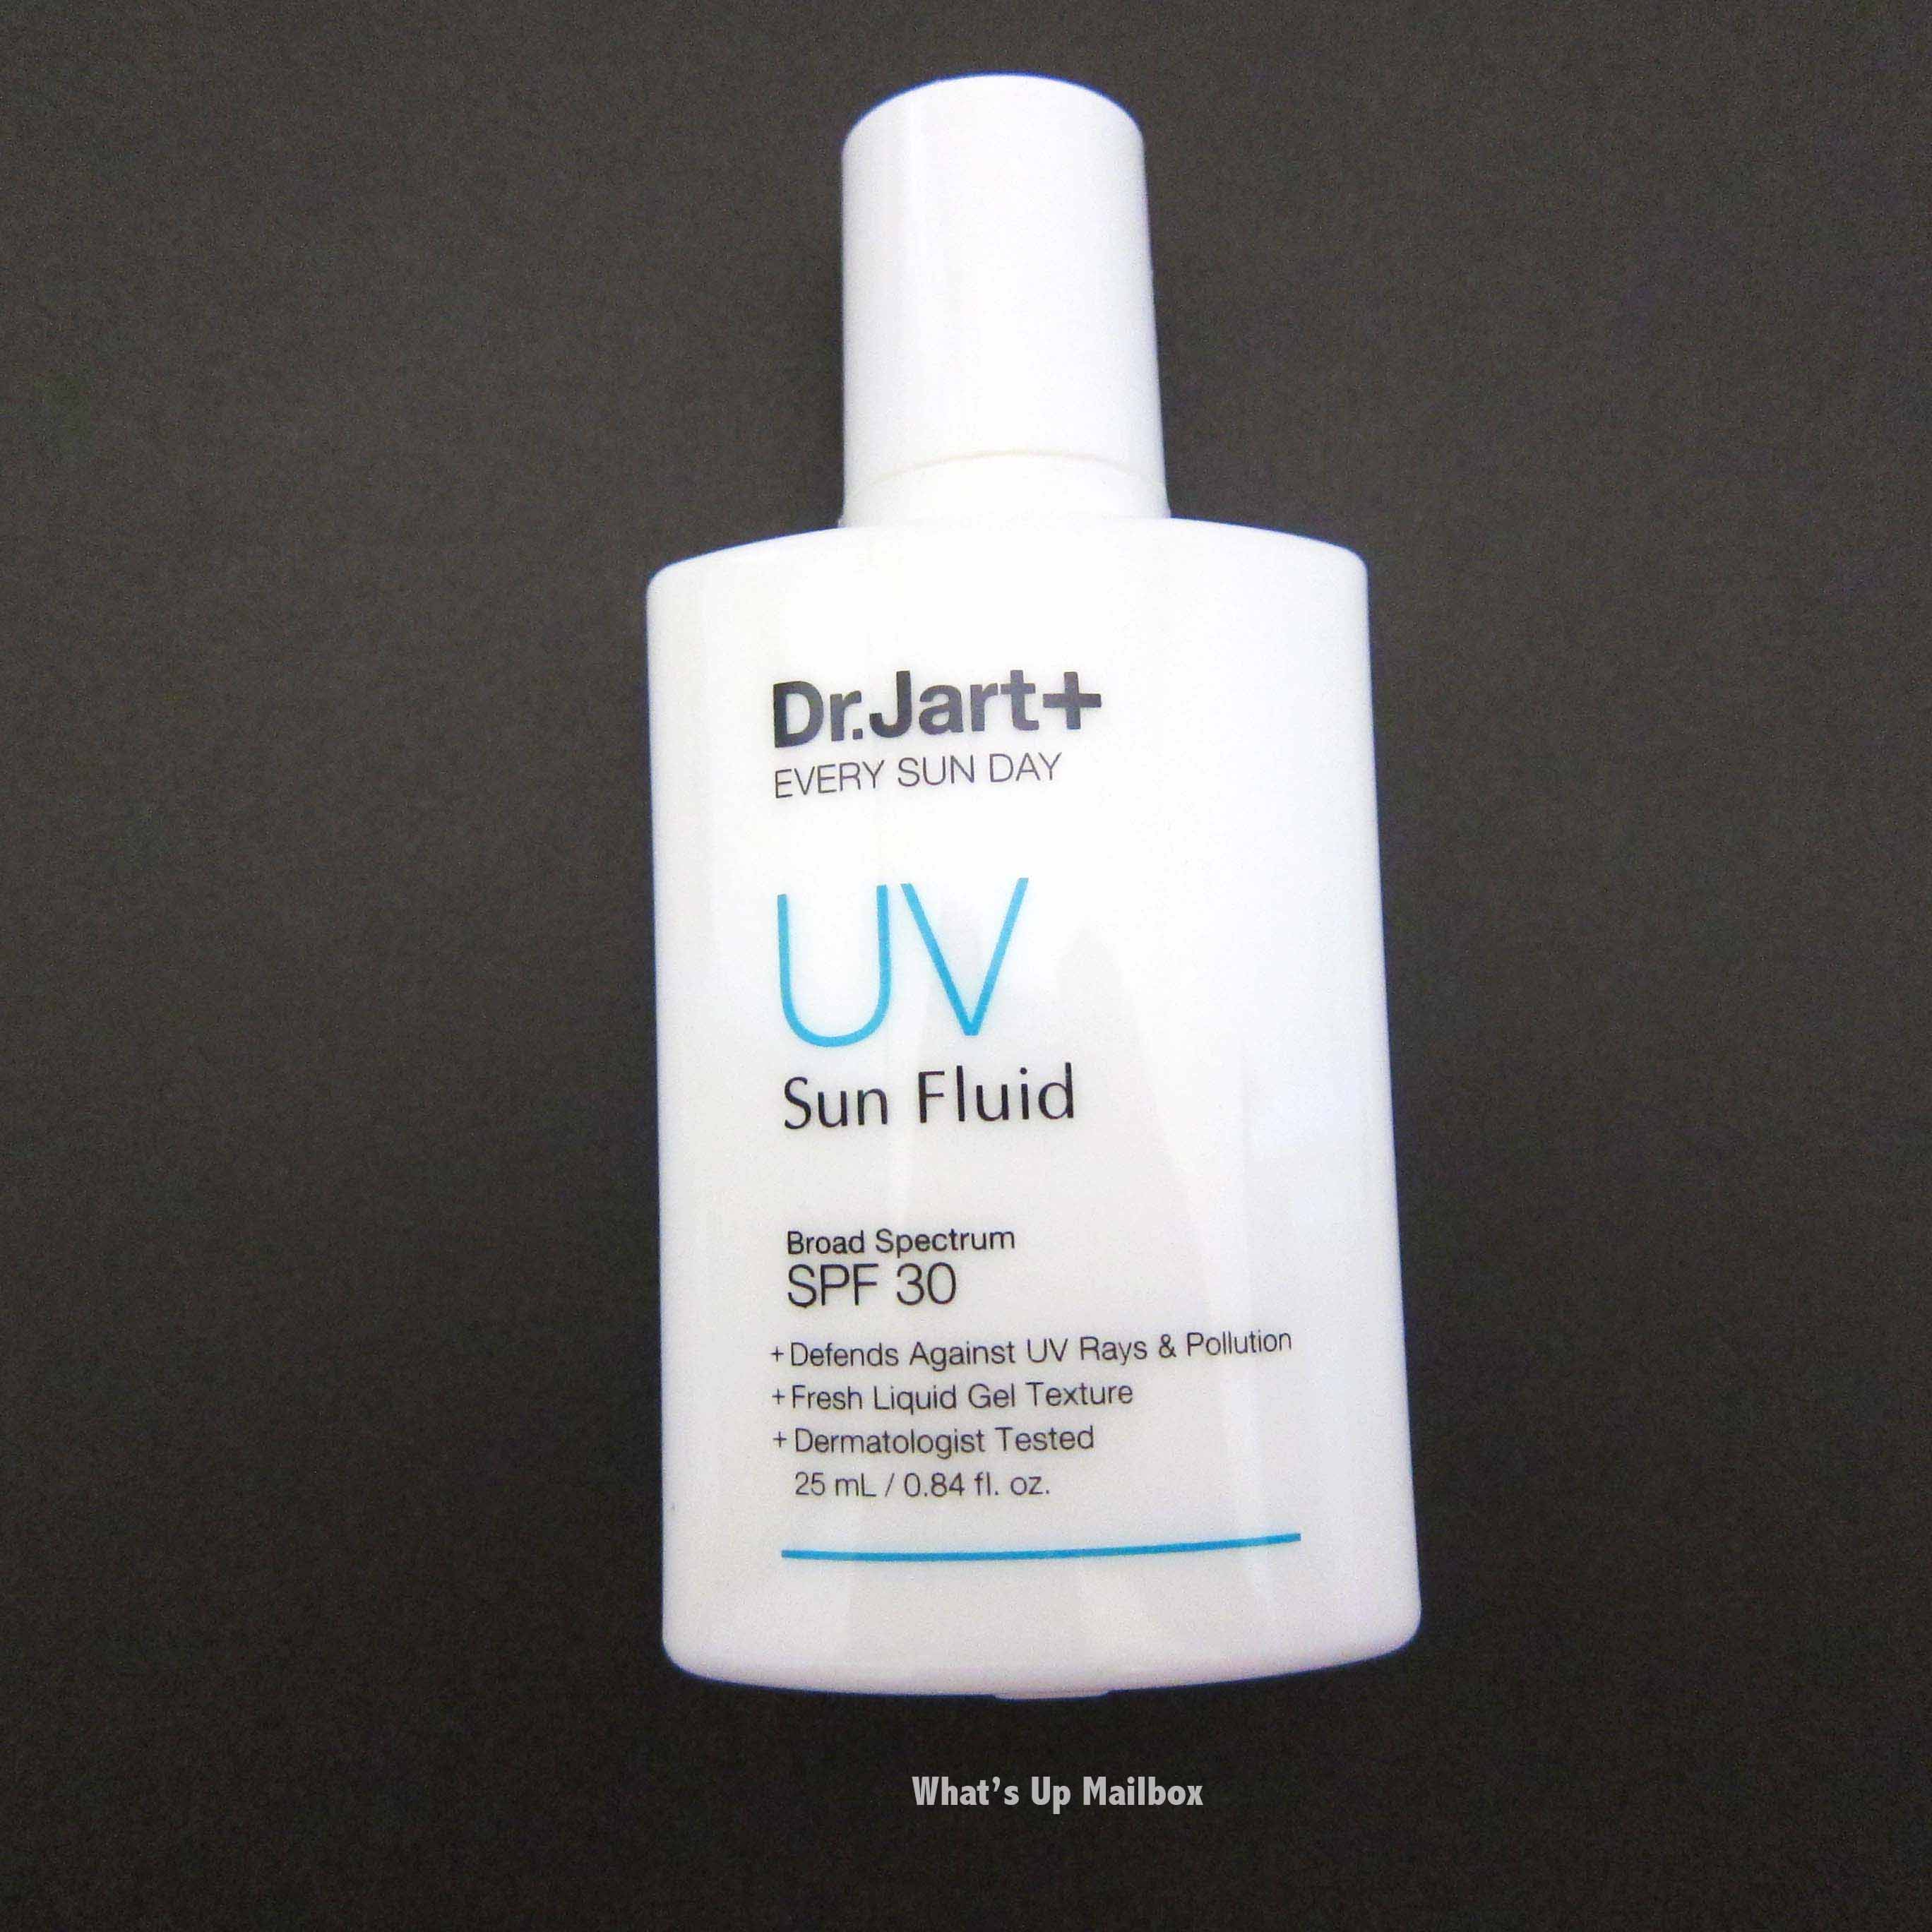 Dr. Jart+ Every Sun Day SPF 30 UV Sun Fluid